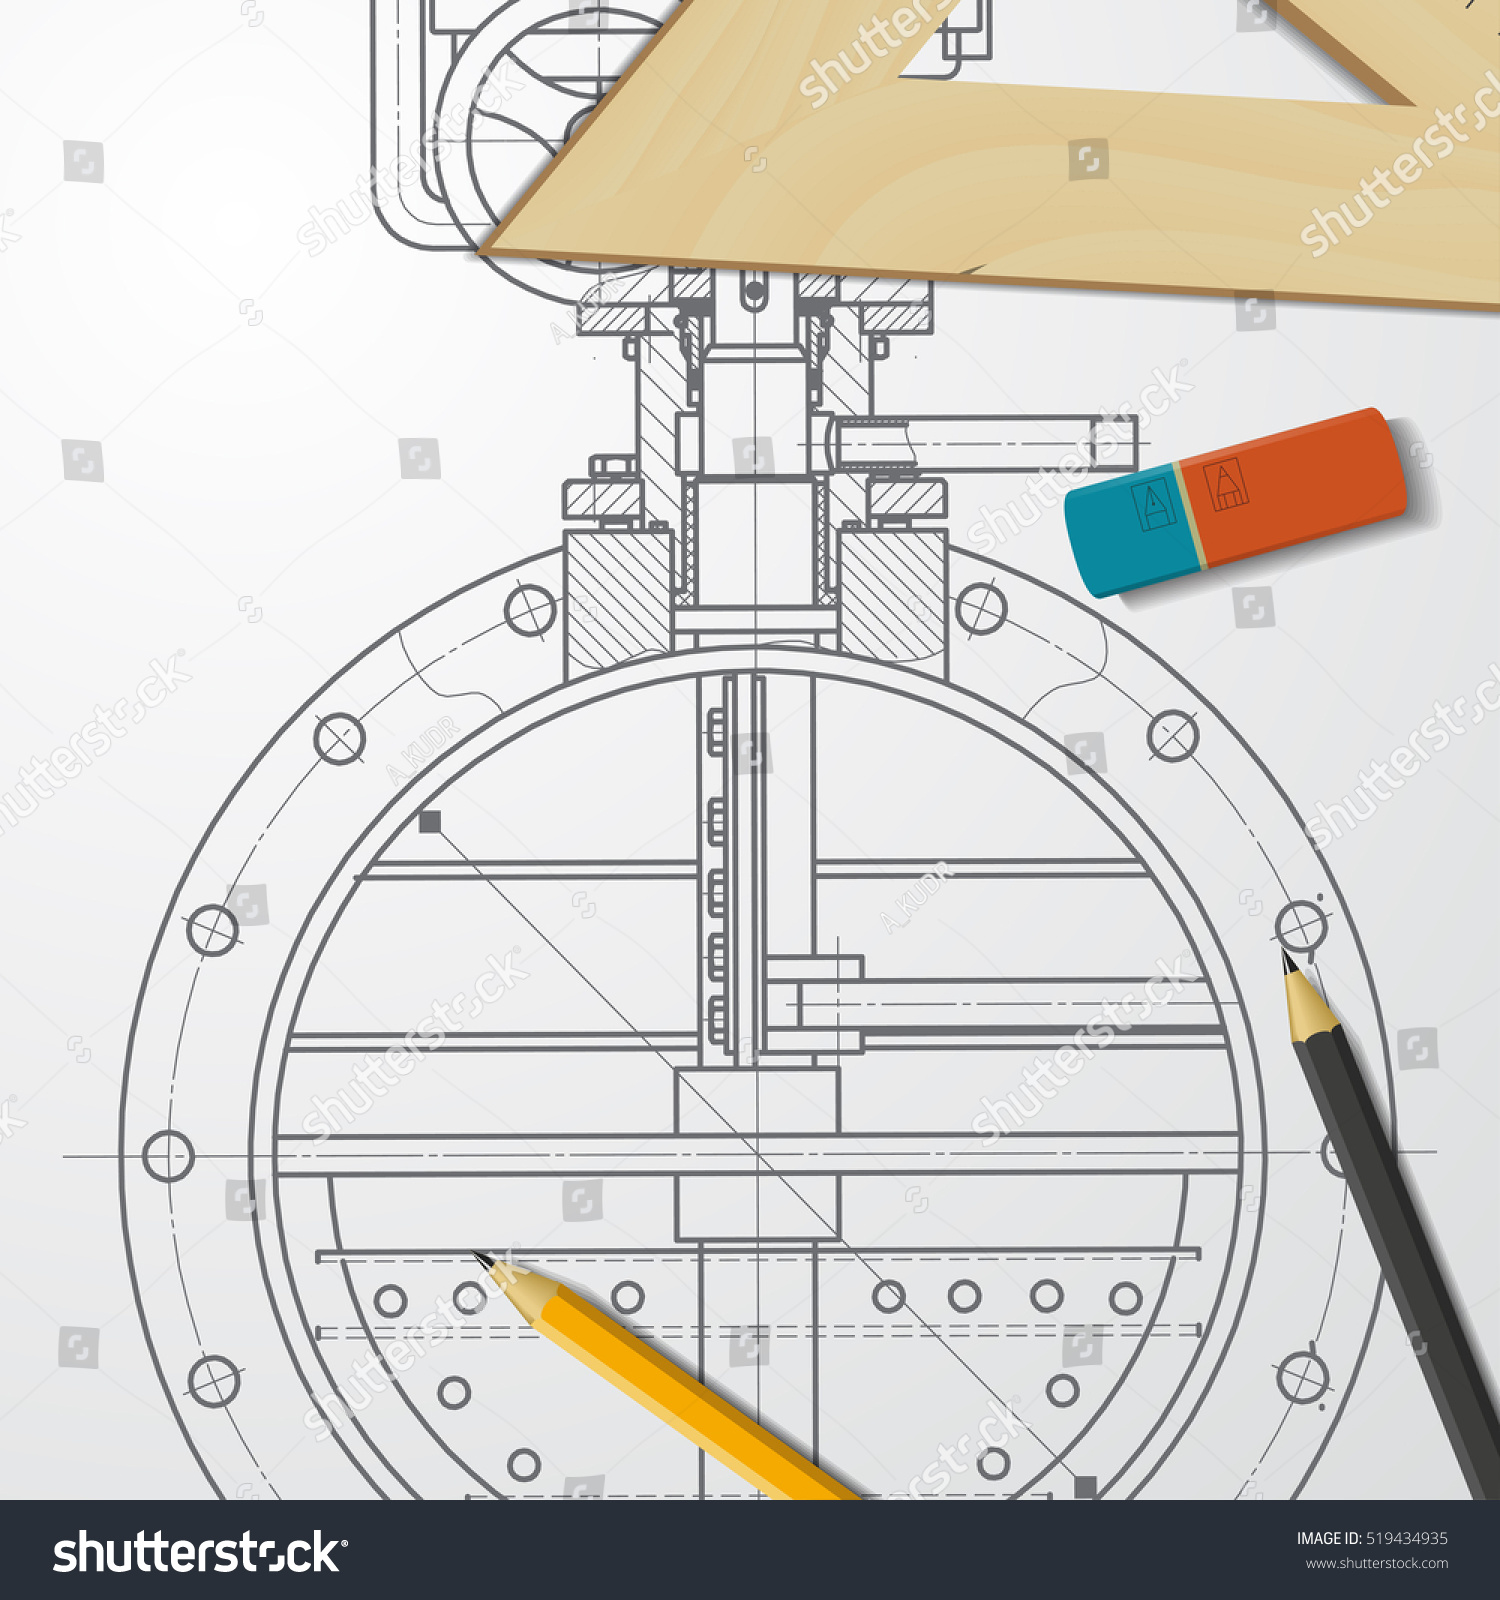 Awesome low voltage symbols for blueprints gallery everything 100 construction blueprint reading ppt video online download malvernweather Images